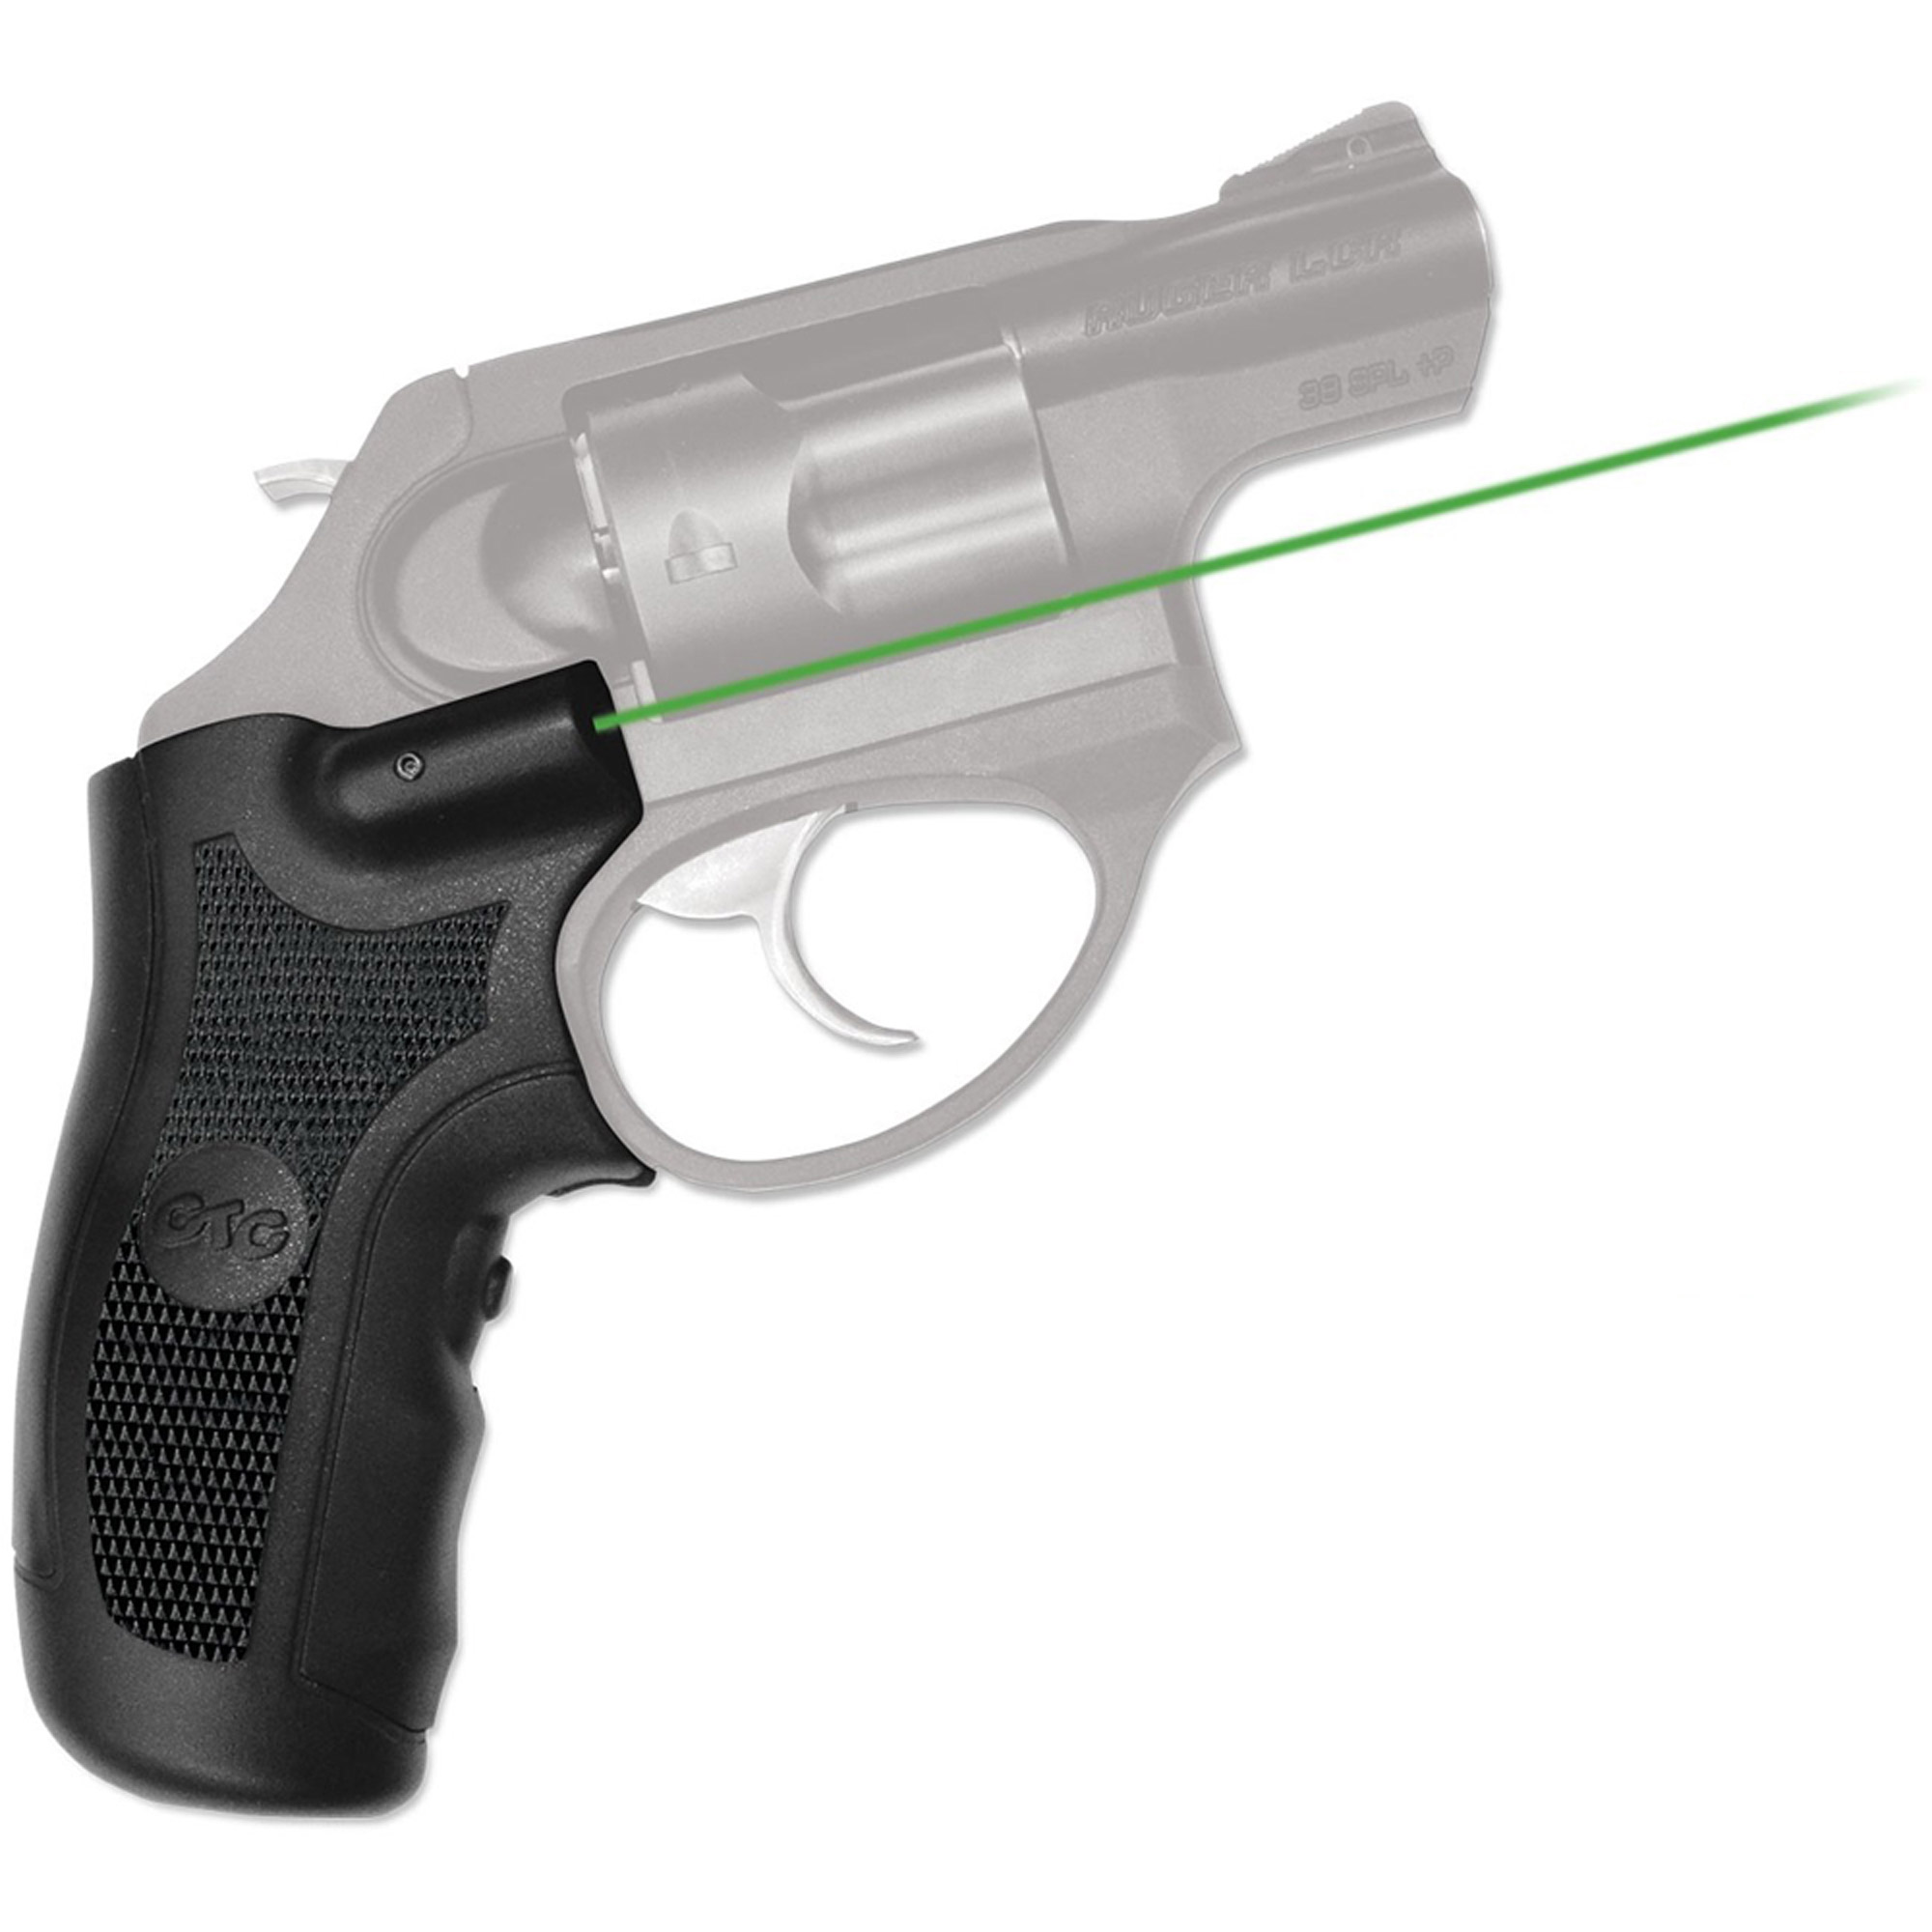 Crimson Trace Corporation Green LaserGrip, Fits Ruger LCR, Standard Polymer